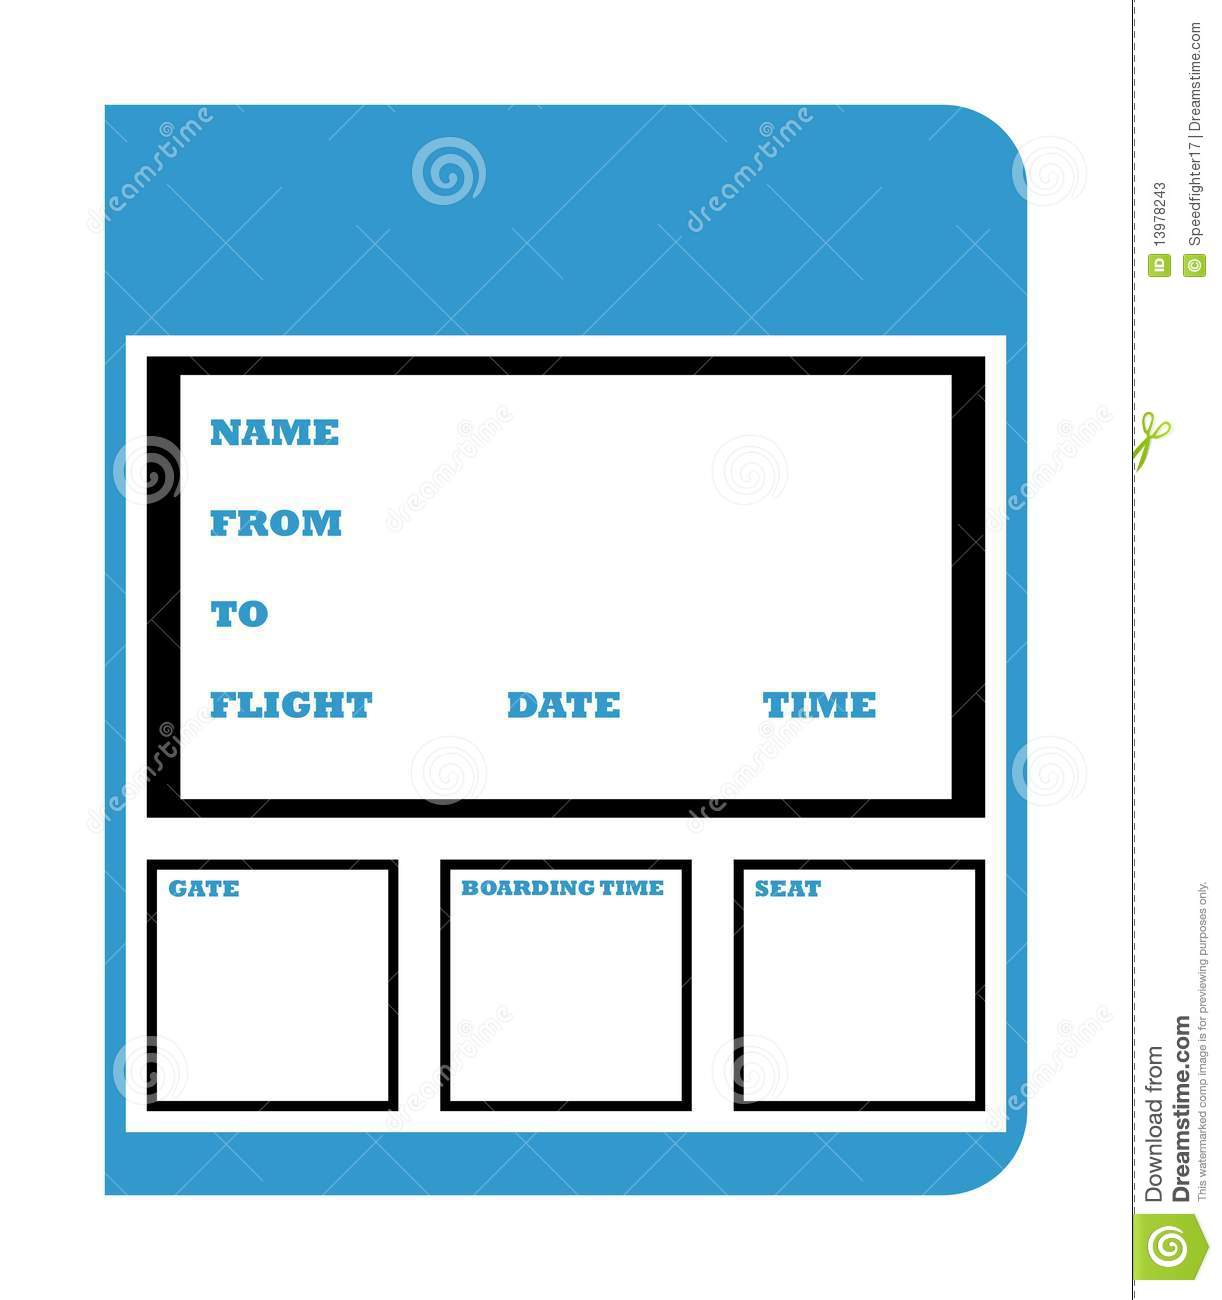 united airlines boarding pass template .